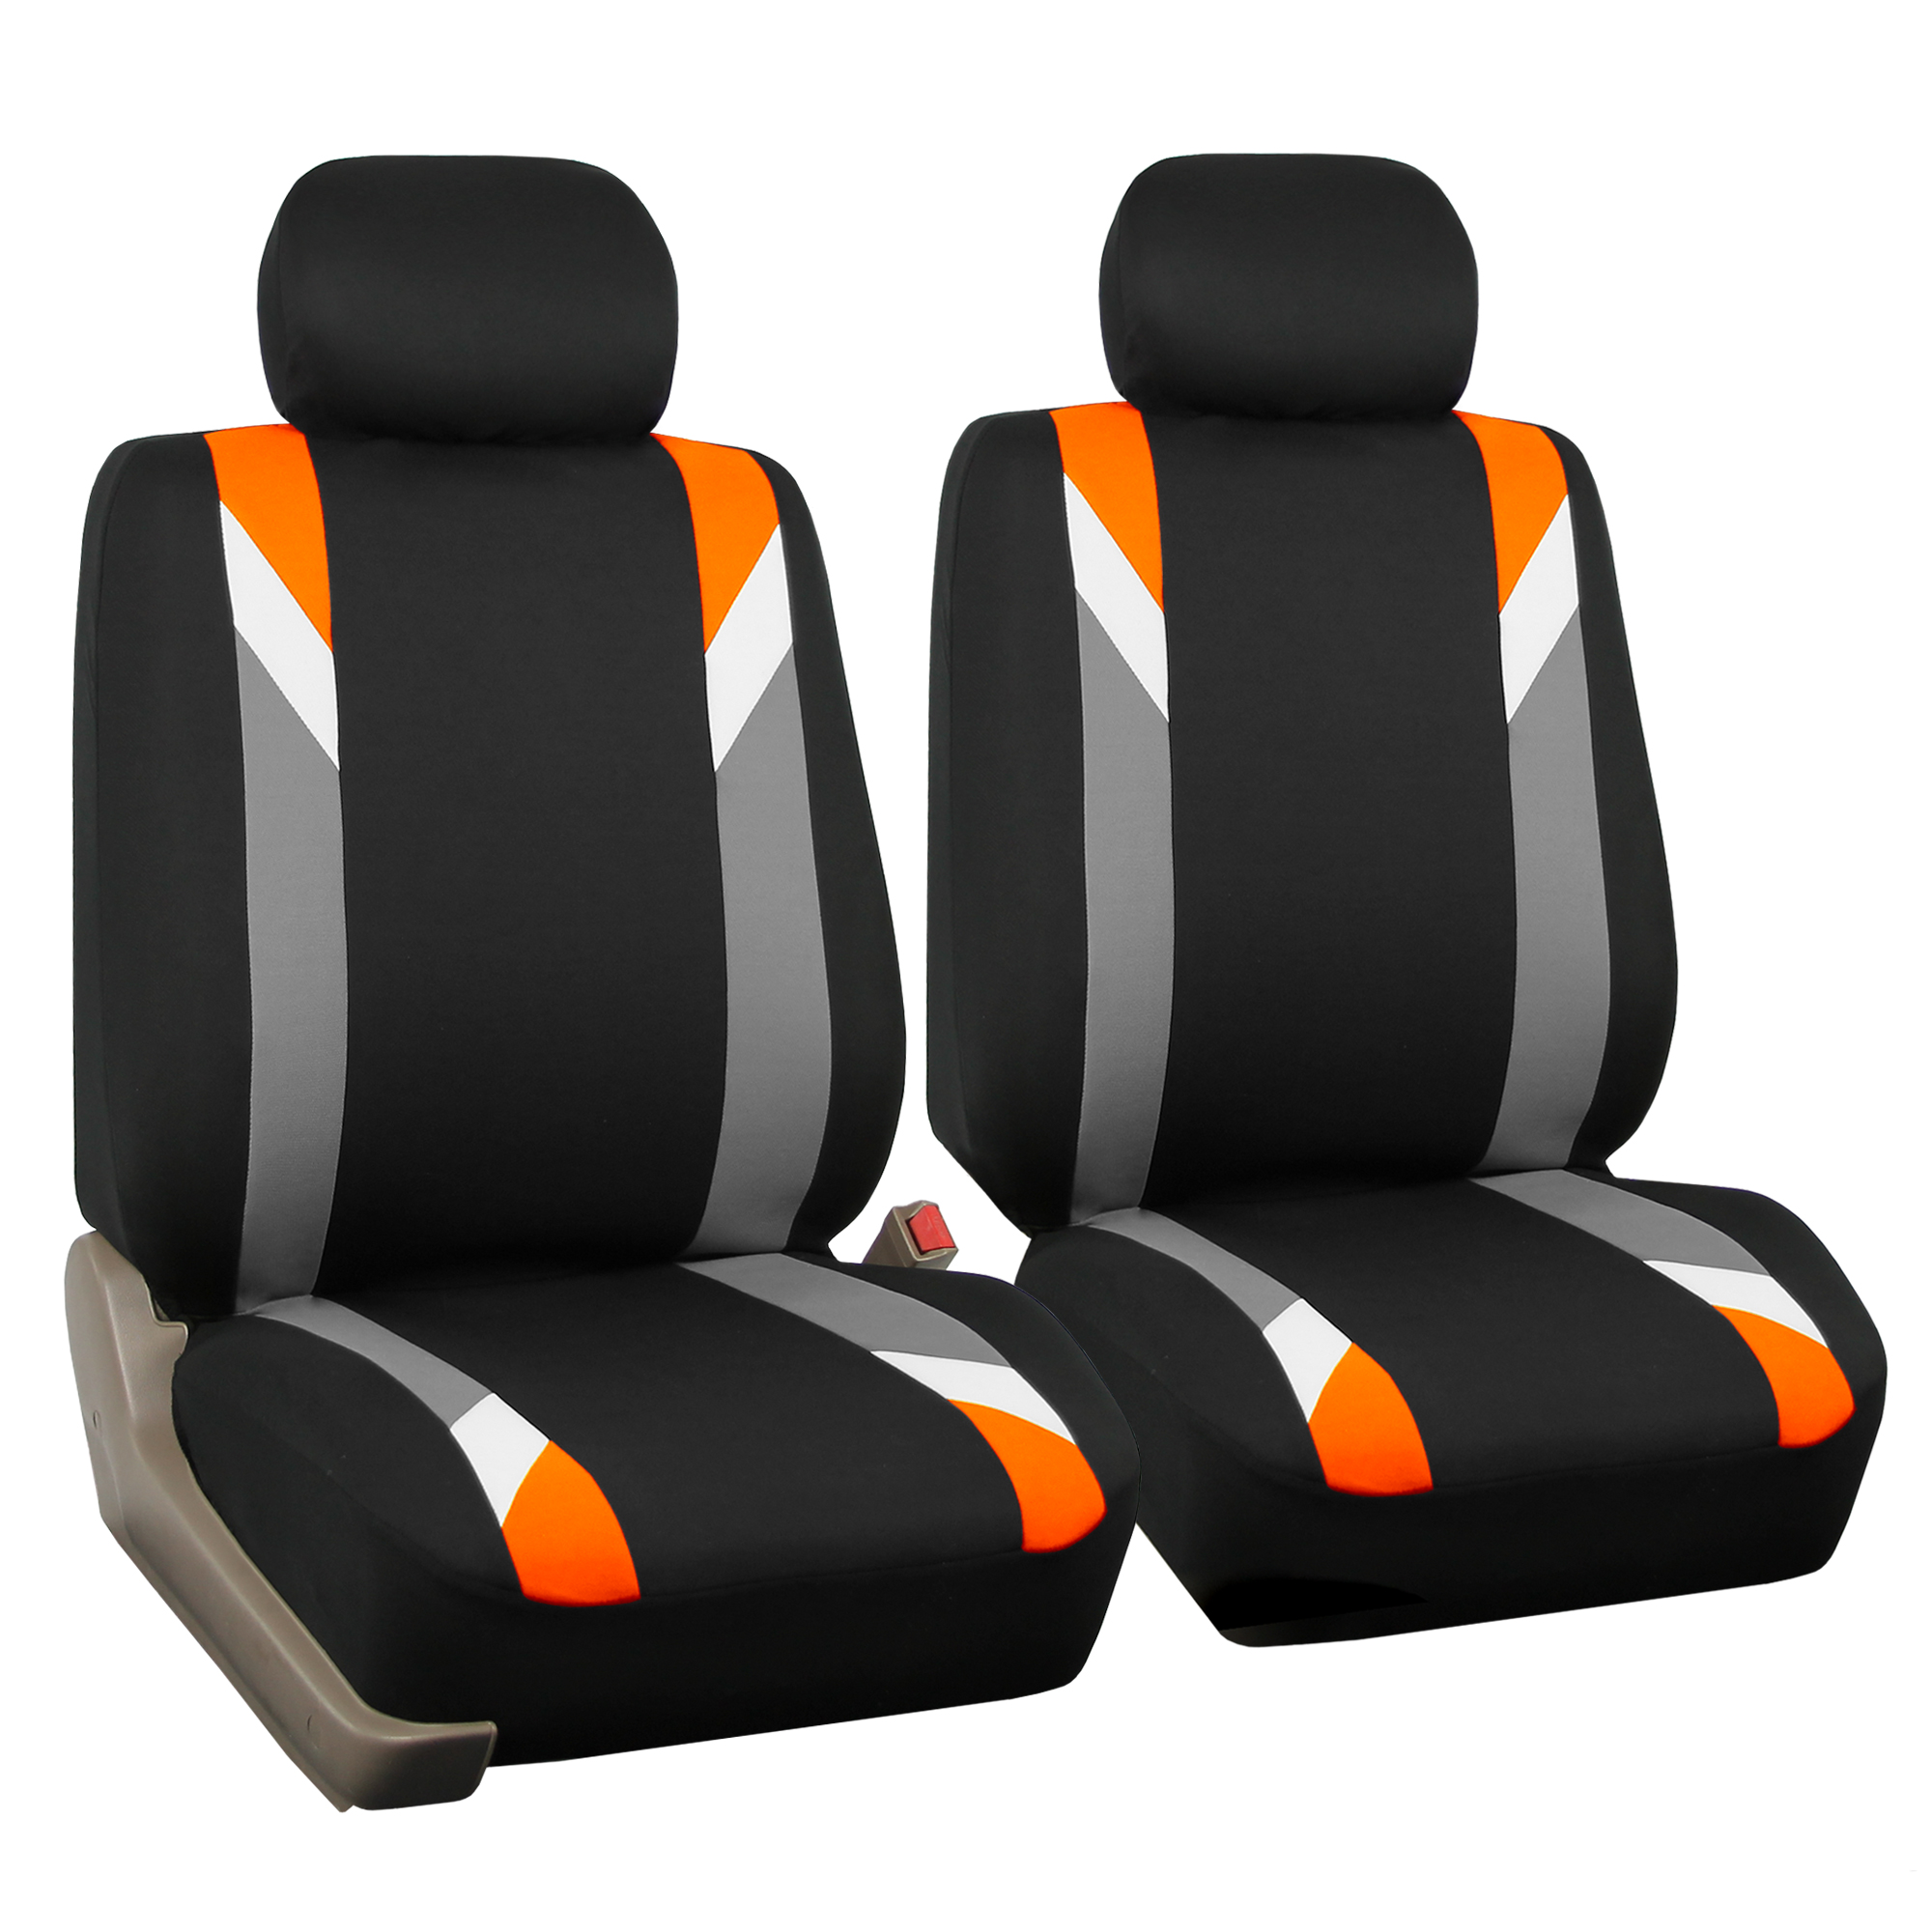 FH Group Premium Modernistic Front Bucket Car Seat Covers for Sedan, SUV, Tuck, Van, Two Front Buckets, Black Orange